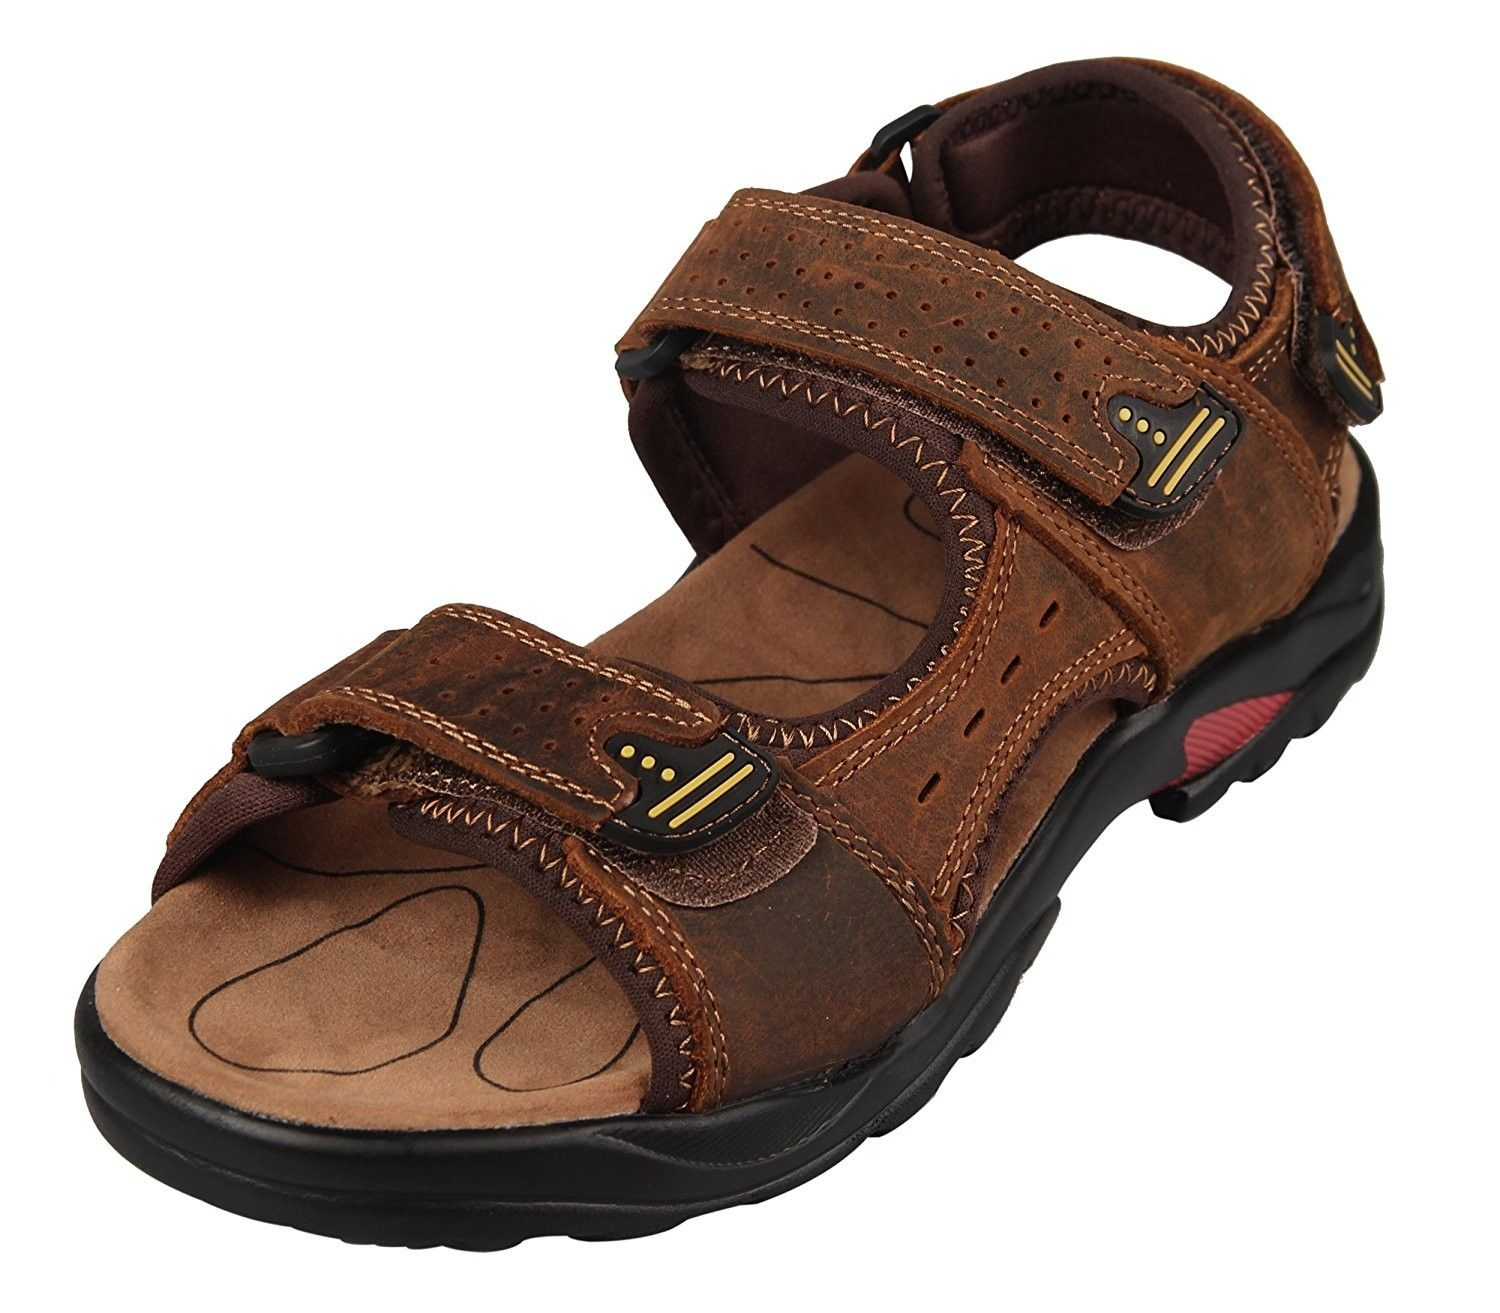 Men's Sport Sandals Leather Water Sandal Outdoor Shoes - Brown Color -  C412HZHEIY1   Best walking sandals, Walking sandals, Leather sandals